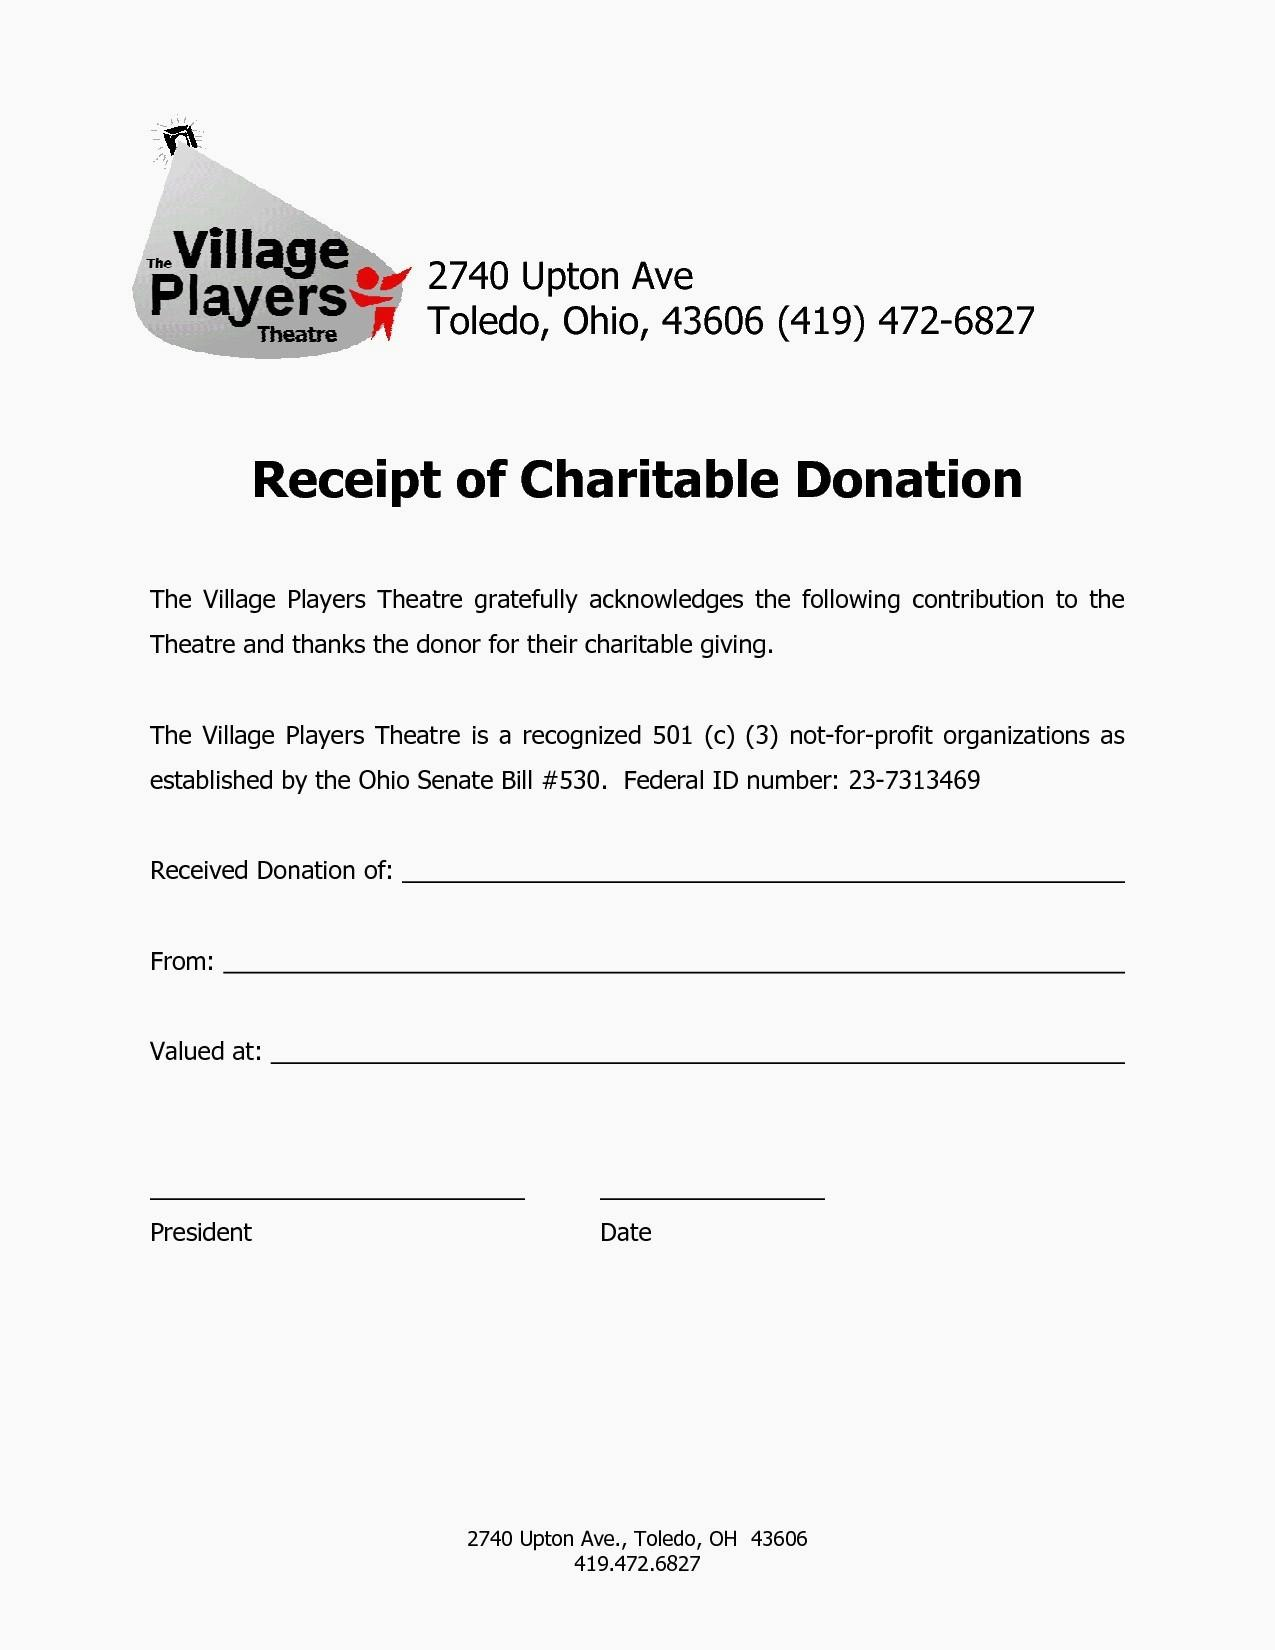 Charitable Contribution Receipt Letter Template